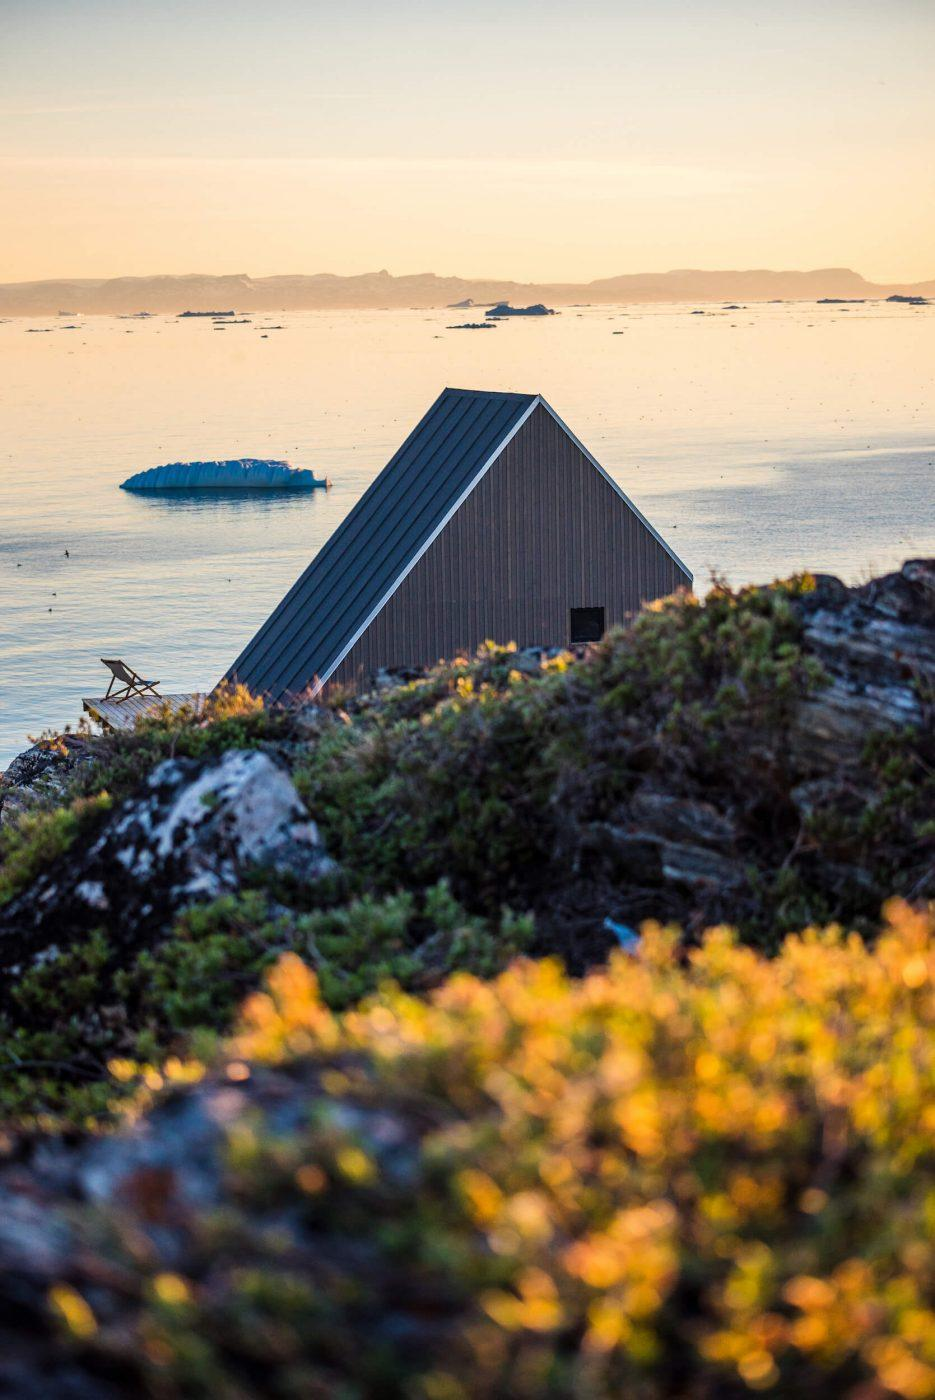 World of Greenland. Ilimanaq. Photo by Gustav Thuesen